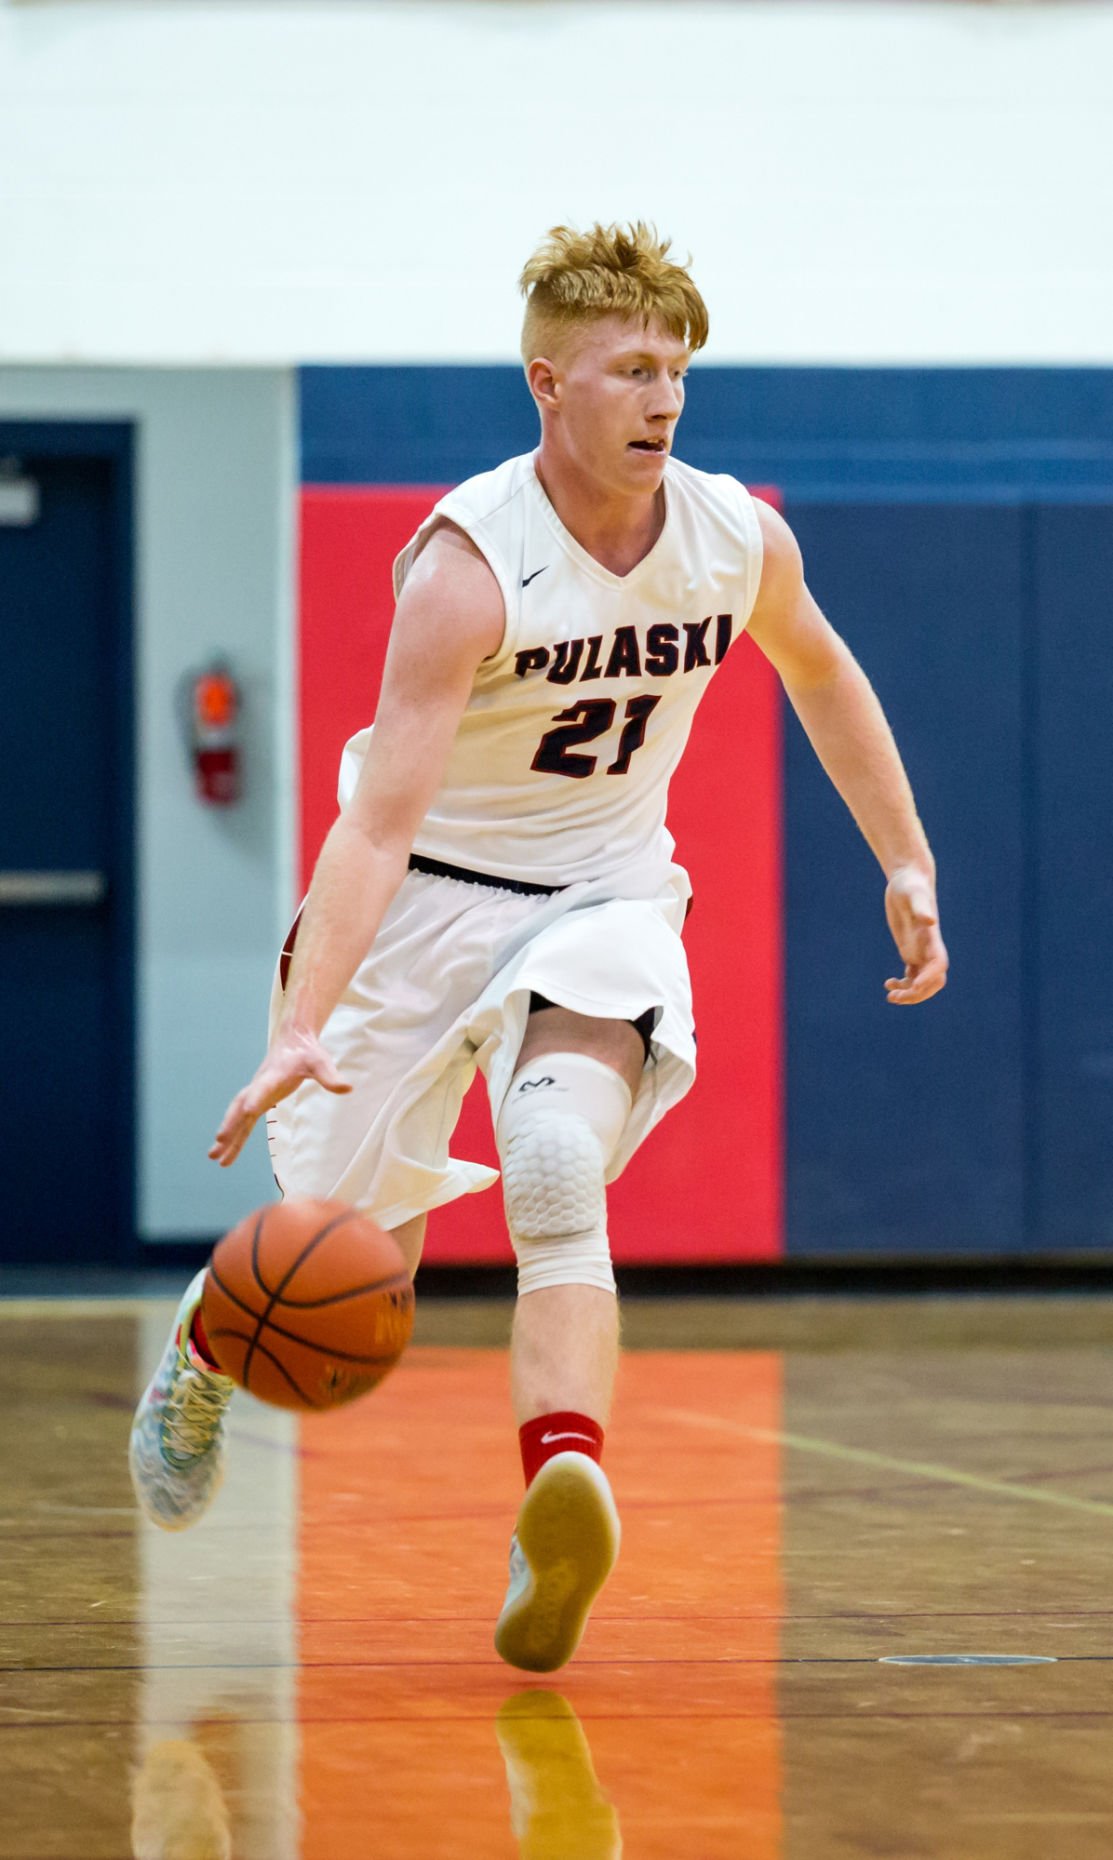 Blue Devils boys basketball team push for Section 3 Class C playoff berth